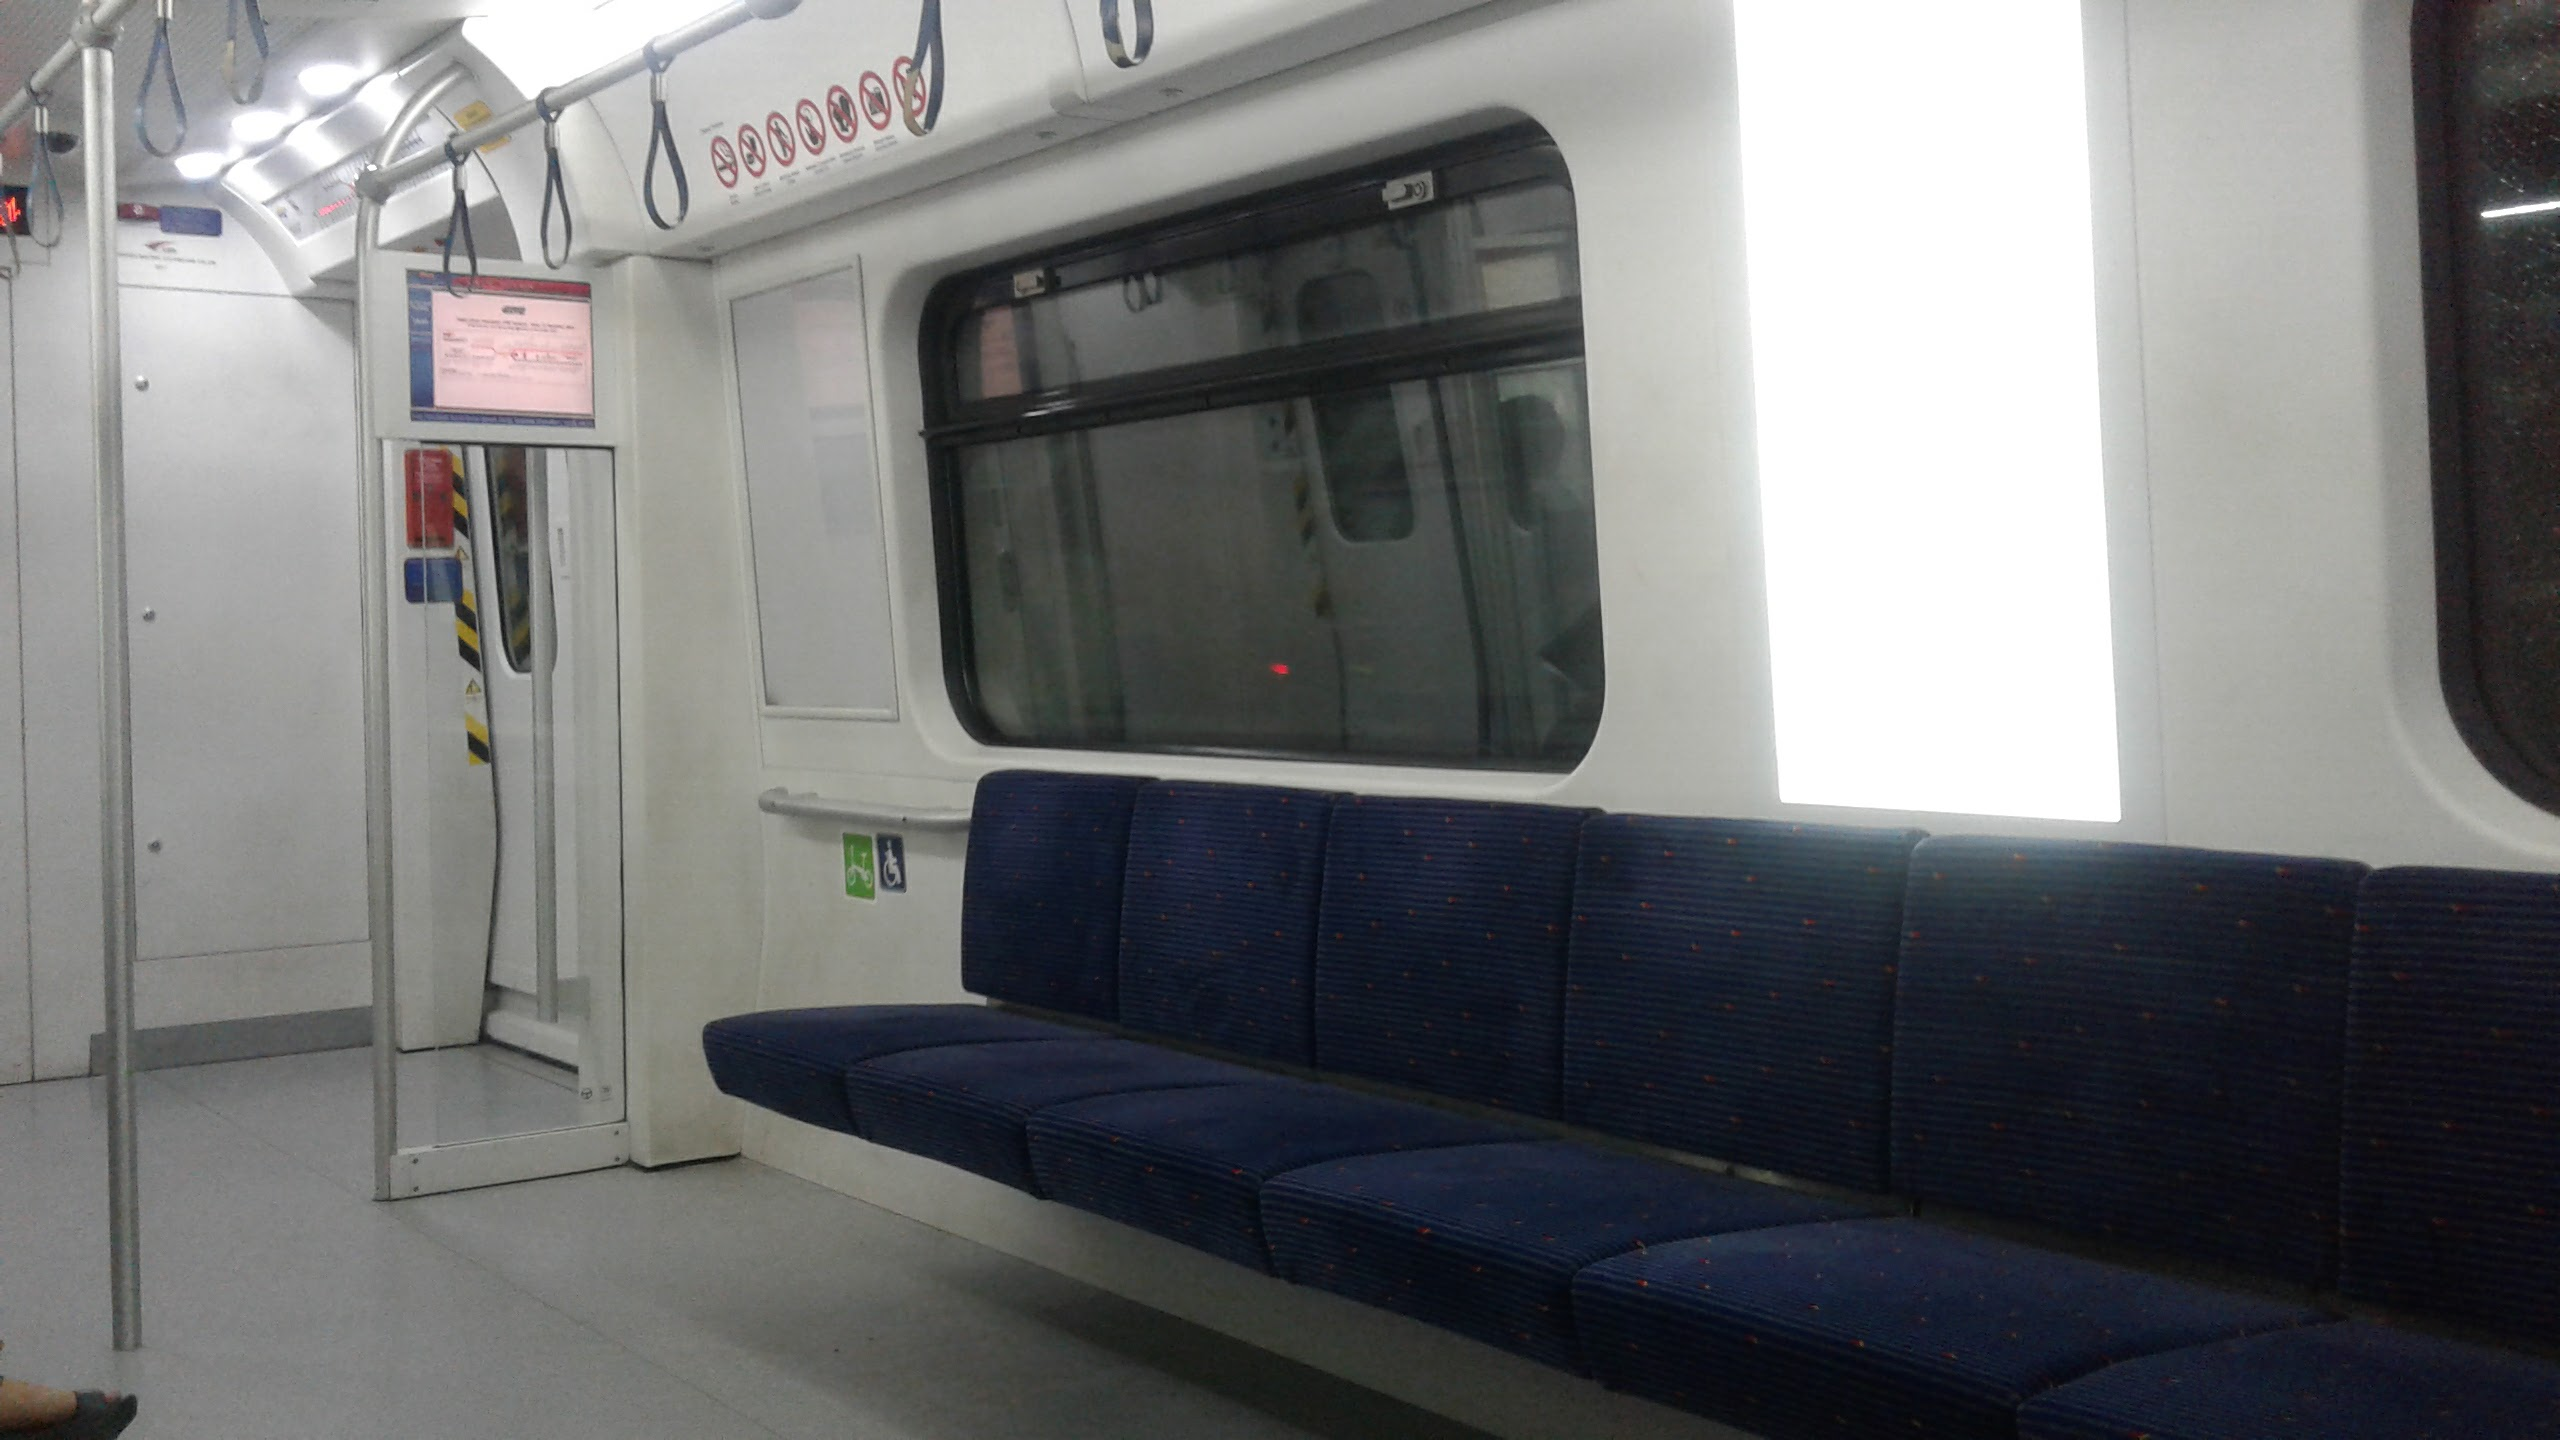 It's lonely going to the last stop.